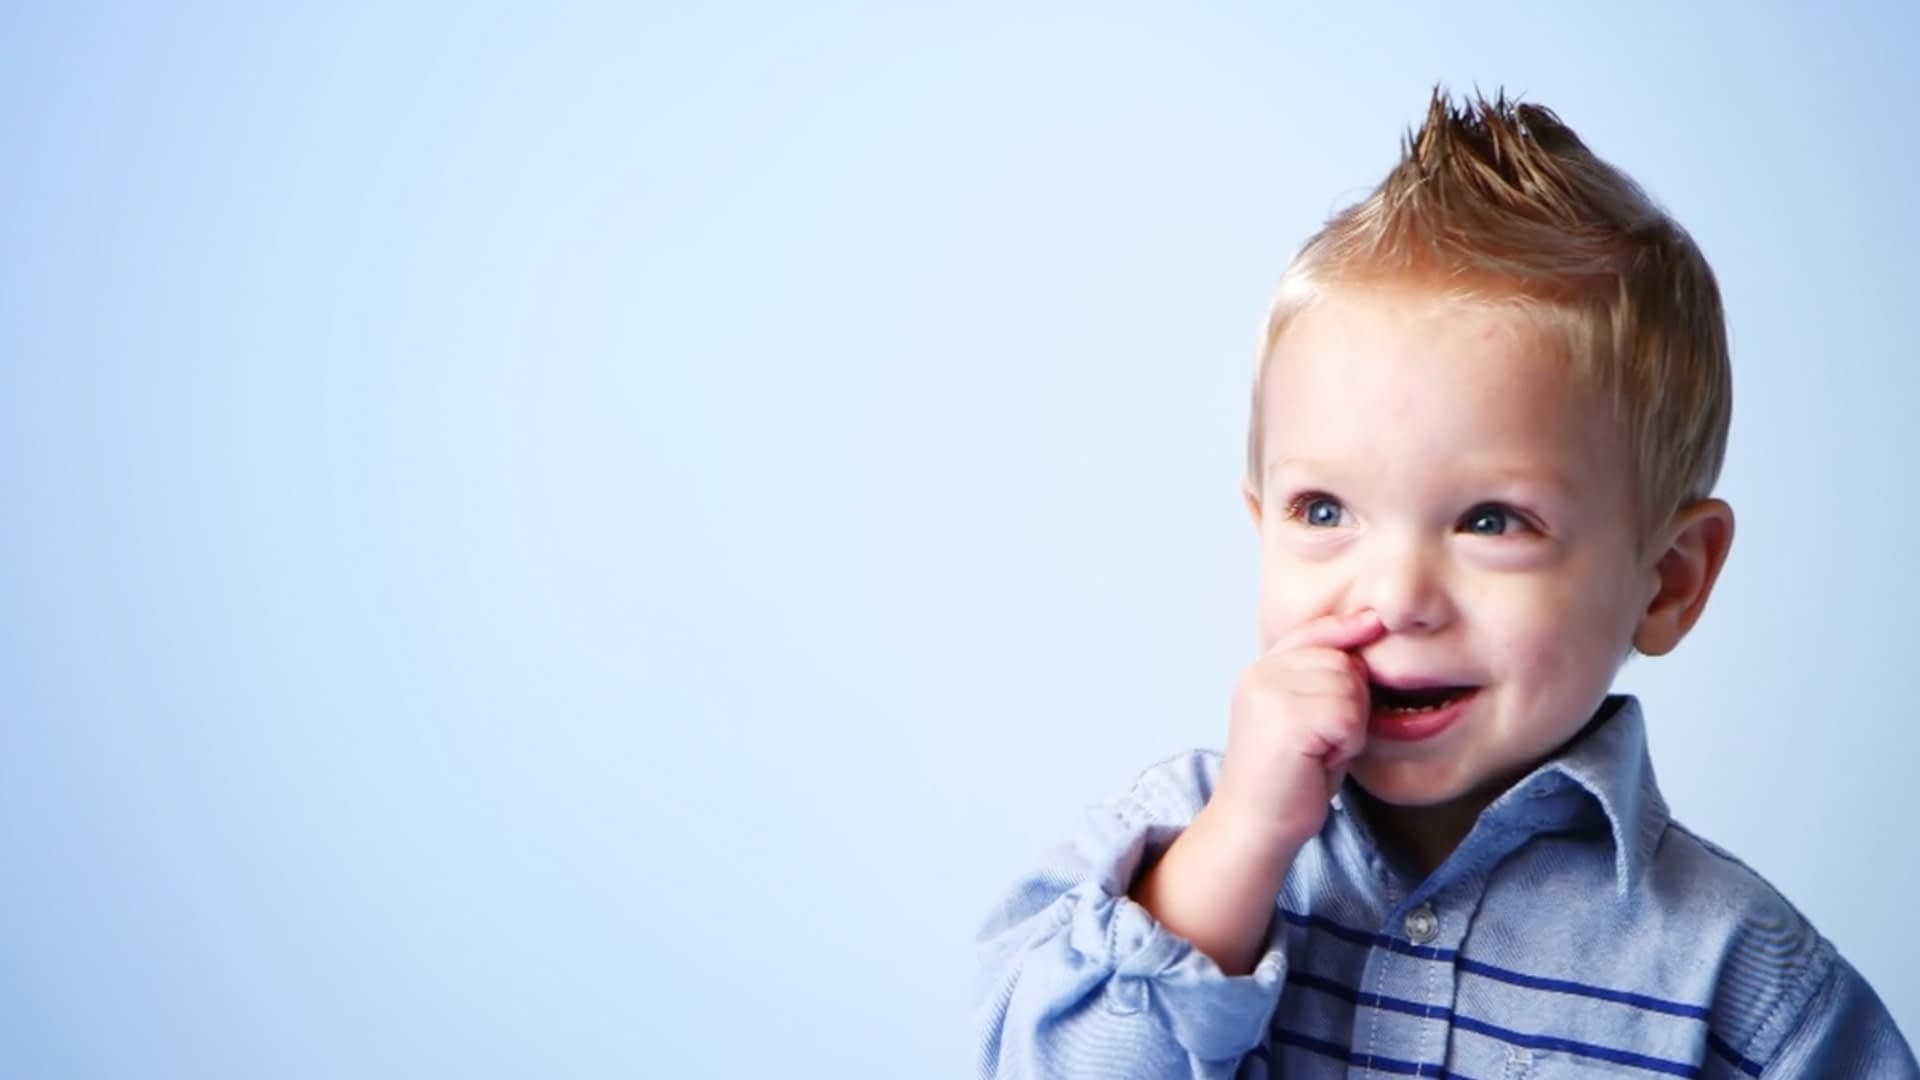 A little boy with a blonde mohawk laughing while picking his nose.